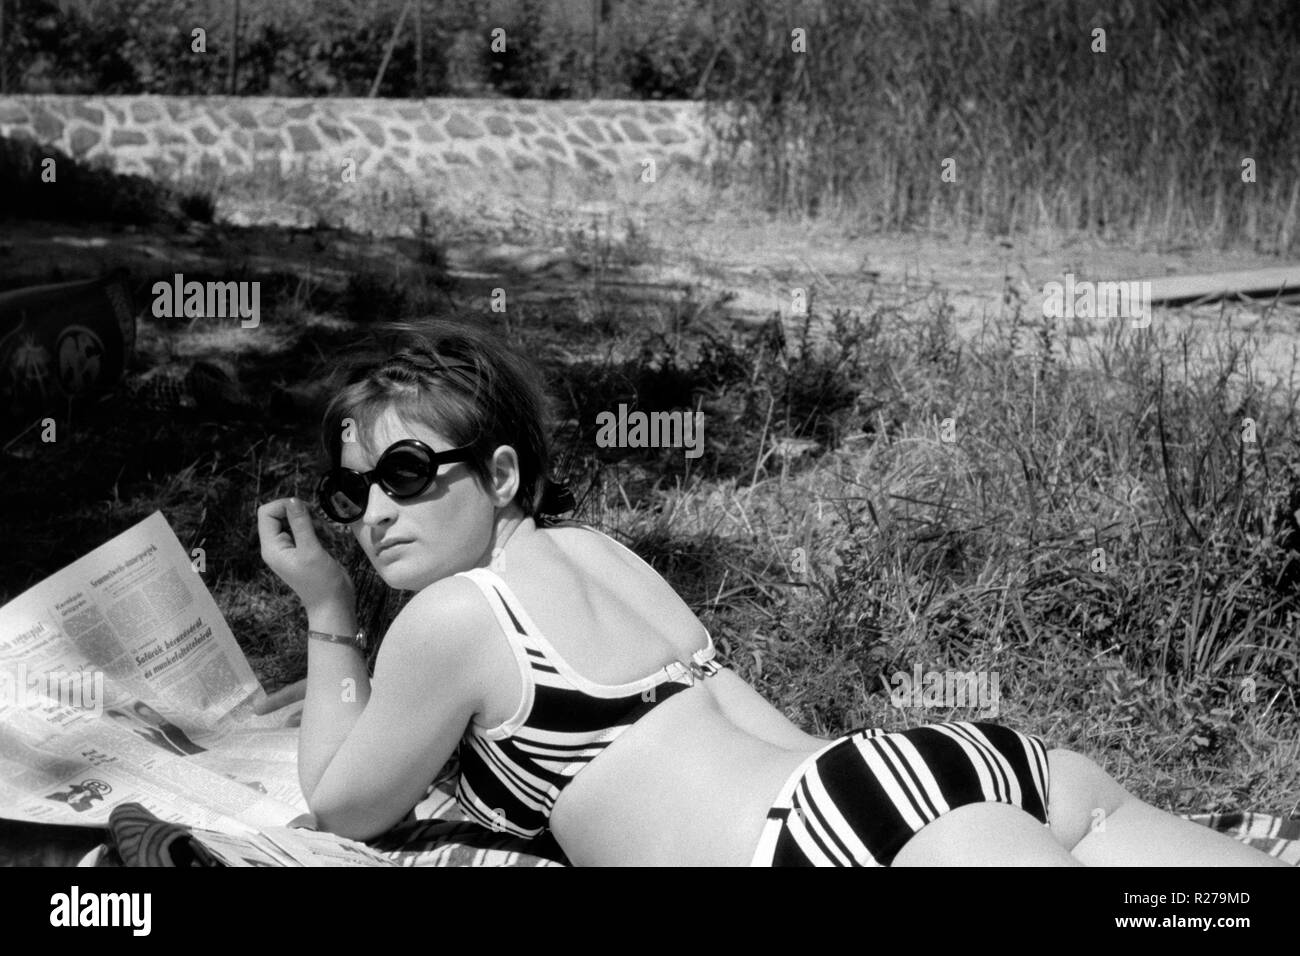 young female in a biking wearing sunglasses reading a newspaper 1970s hungary - Stock Image